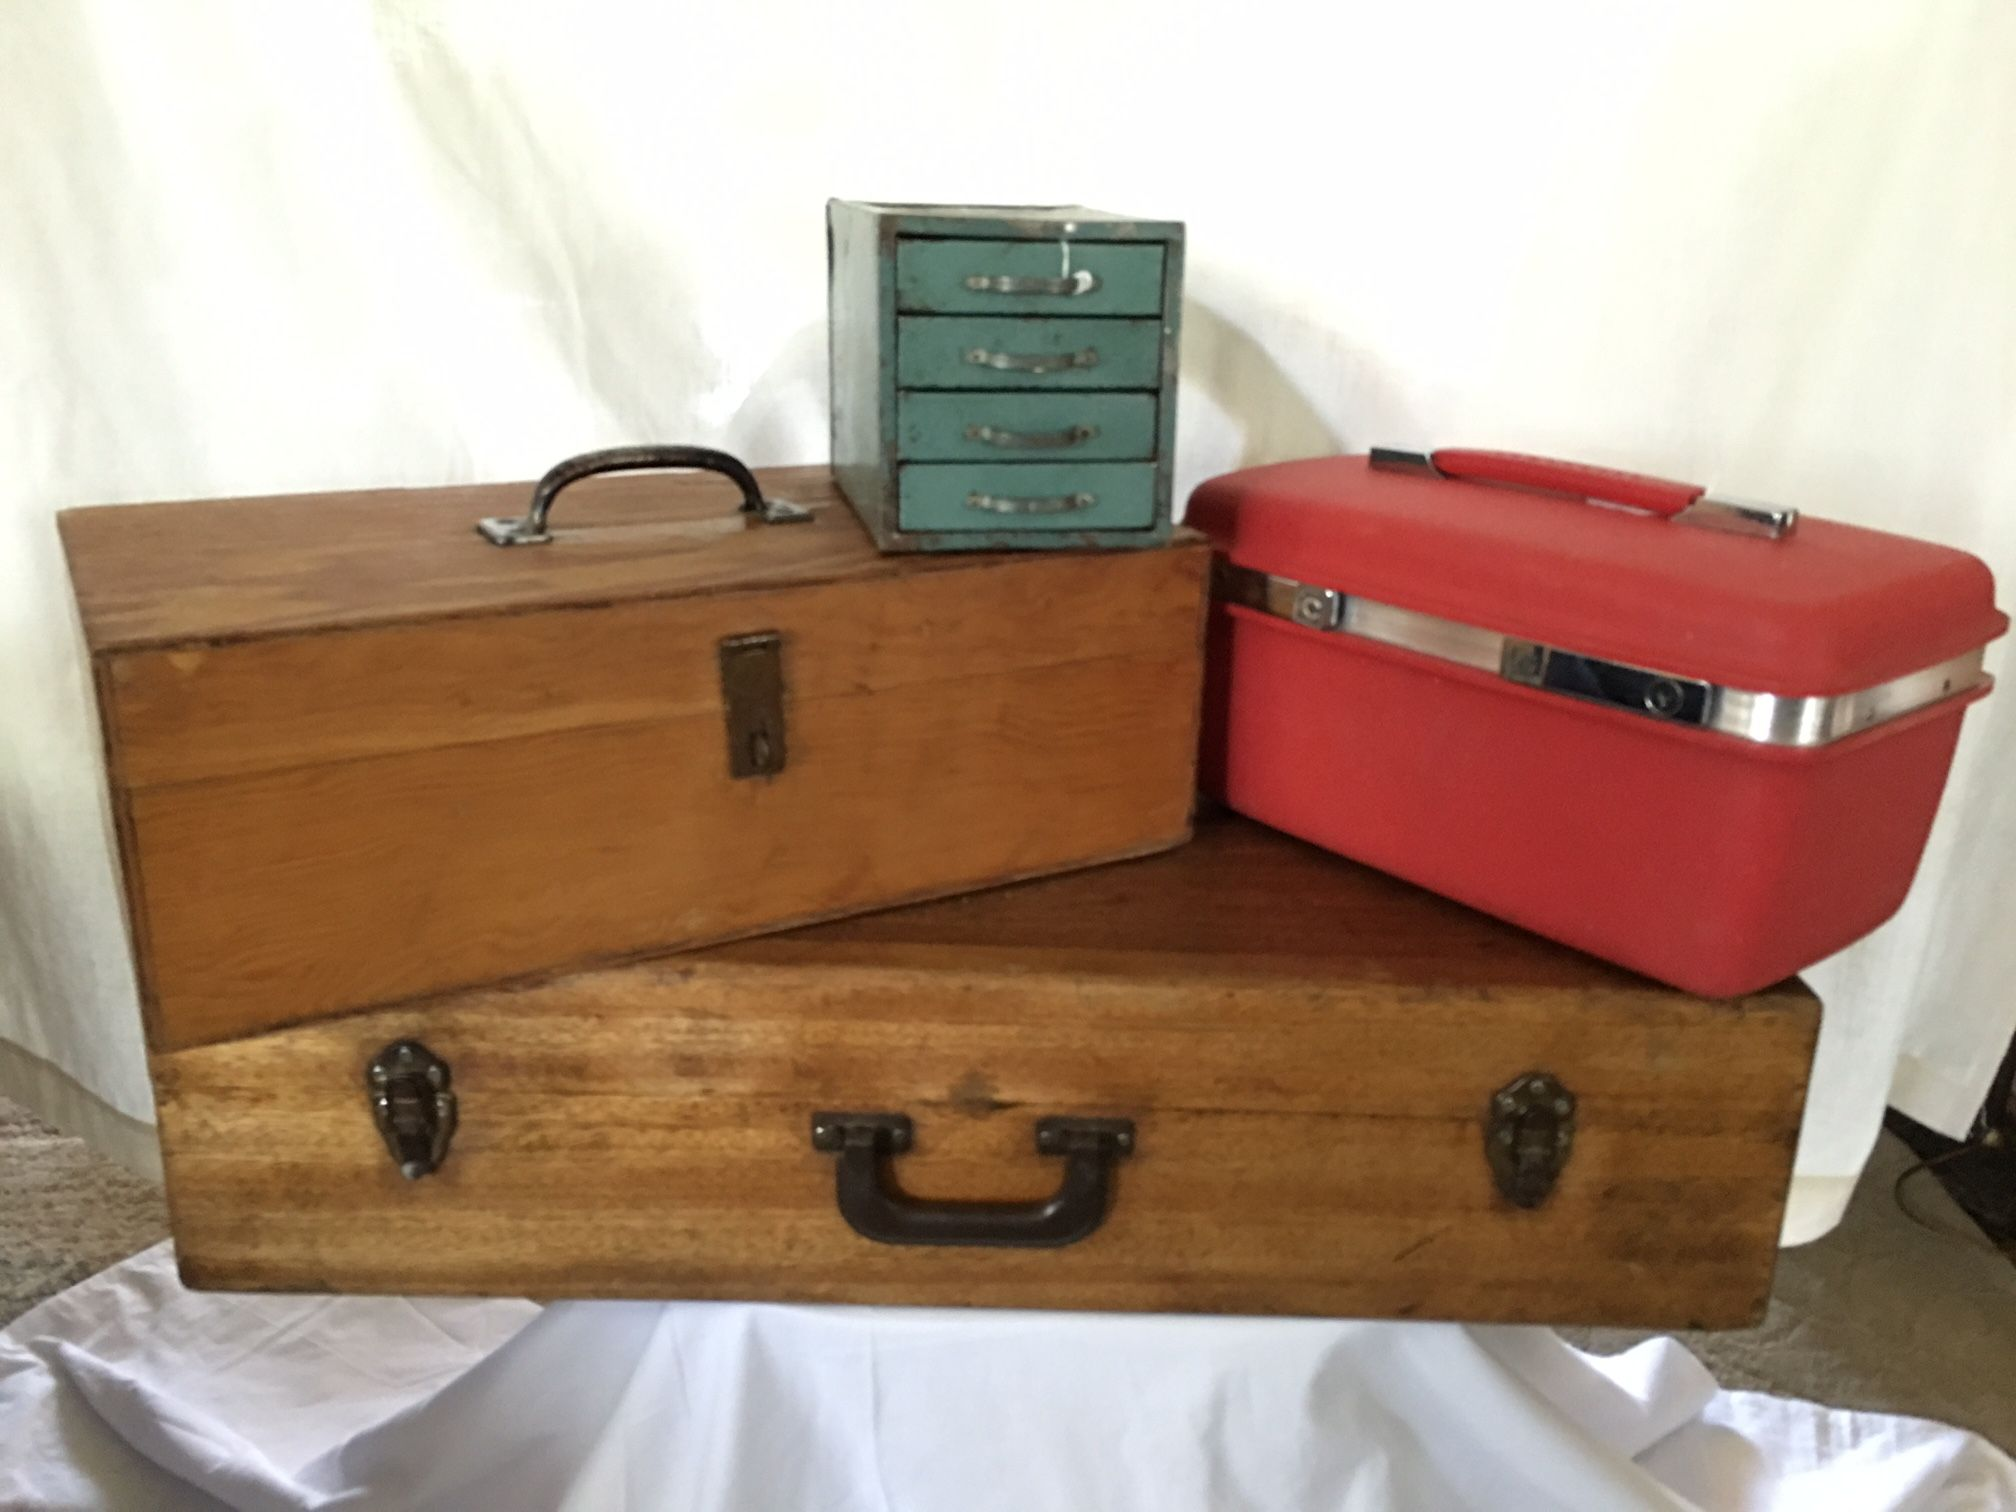 Nice wood boxes, Red Samsonite Makeup case, Cute Green Industrial Box with Drawers.